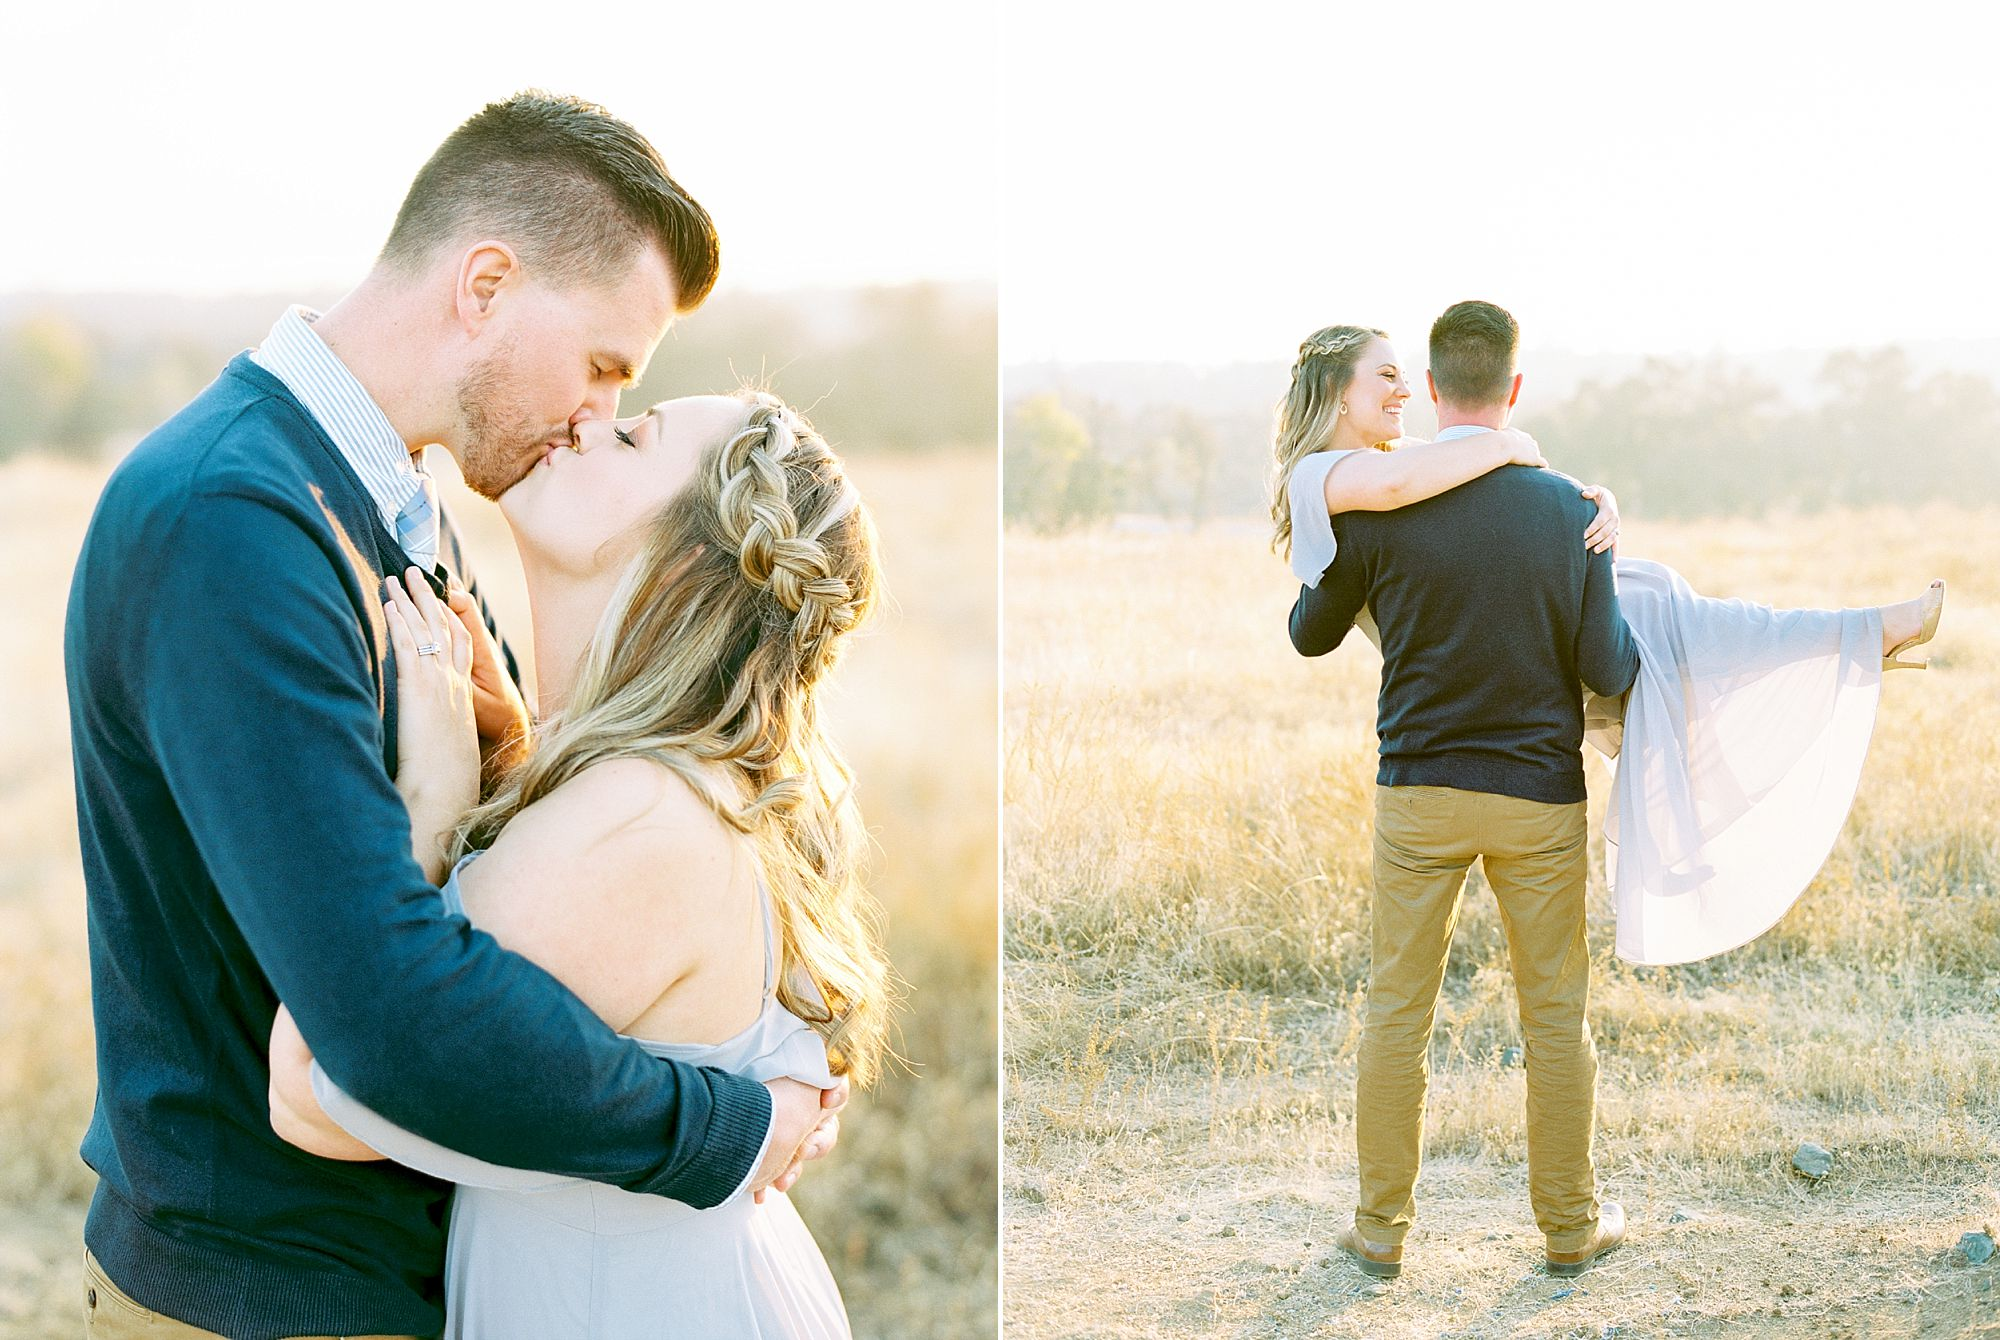 Ten Year Anniversary Portraits on Film - Ashley Baumgartner - Denise and Dan - Sacramento Wedding Photographer - Paso Robles Wedding Photography_0017.jpg